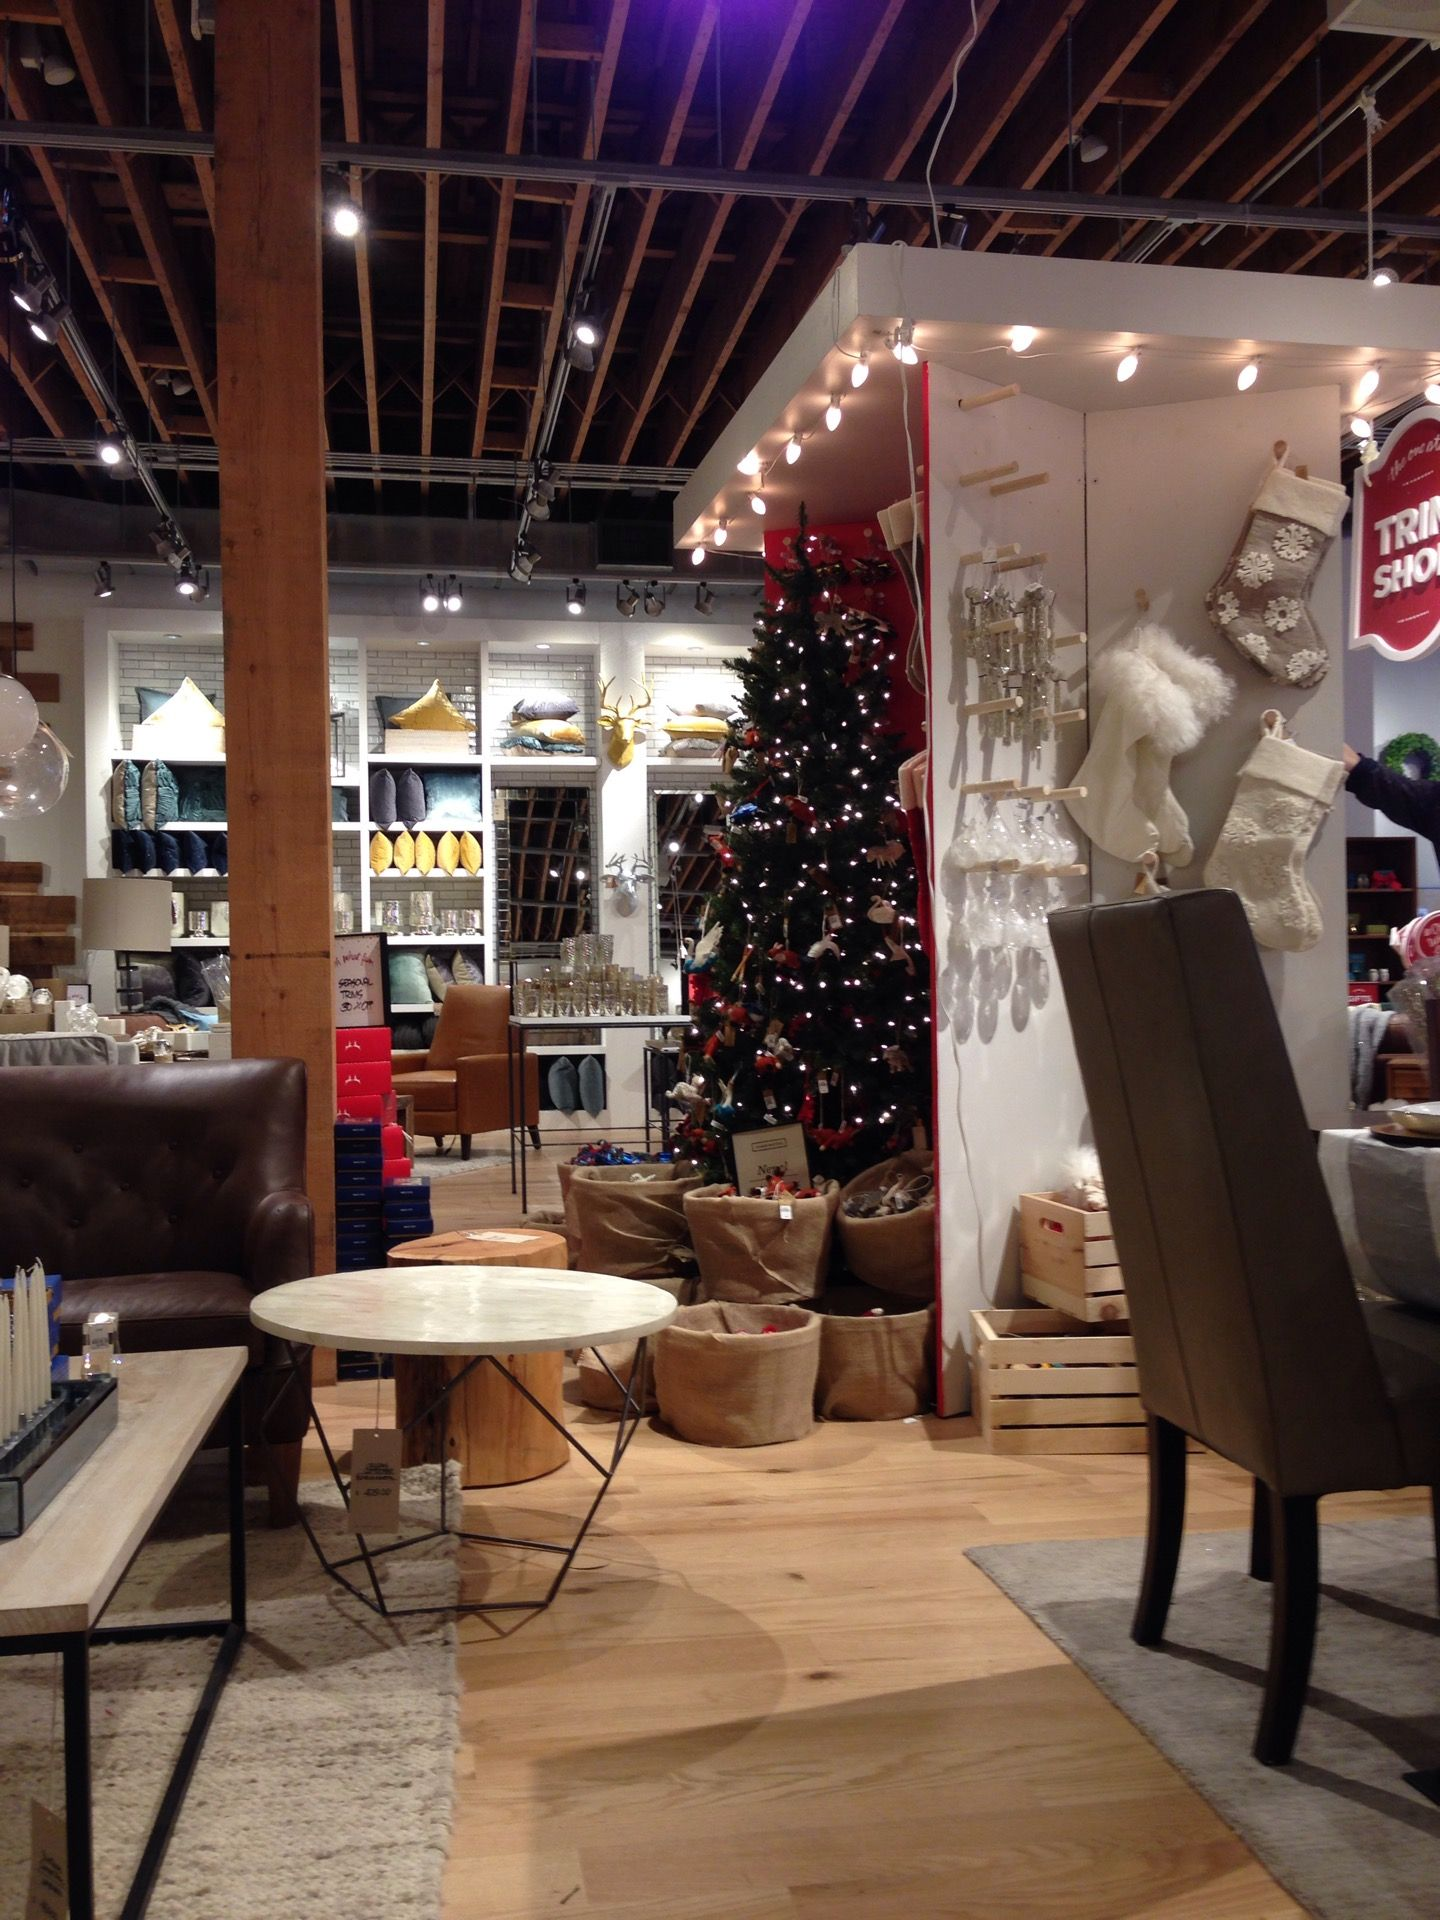 West elm in vancouver bc